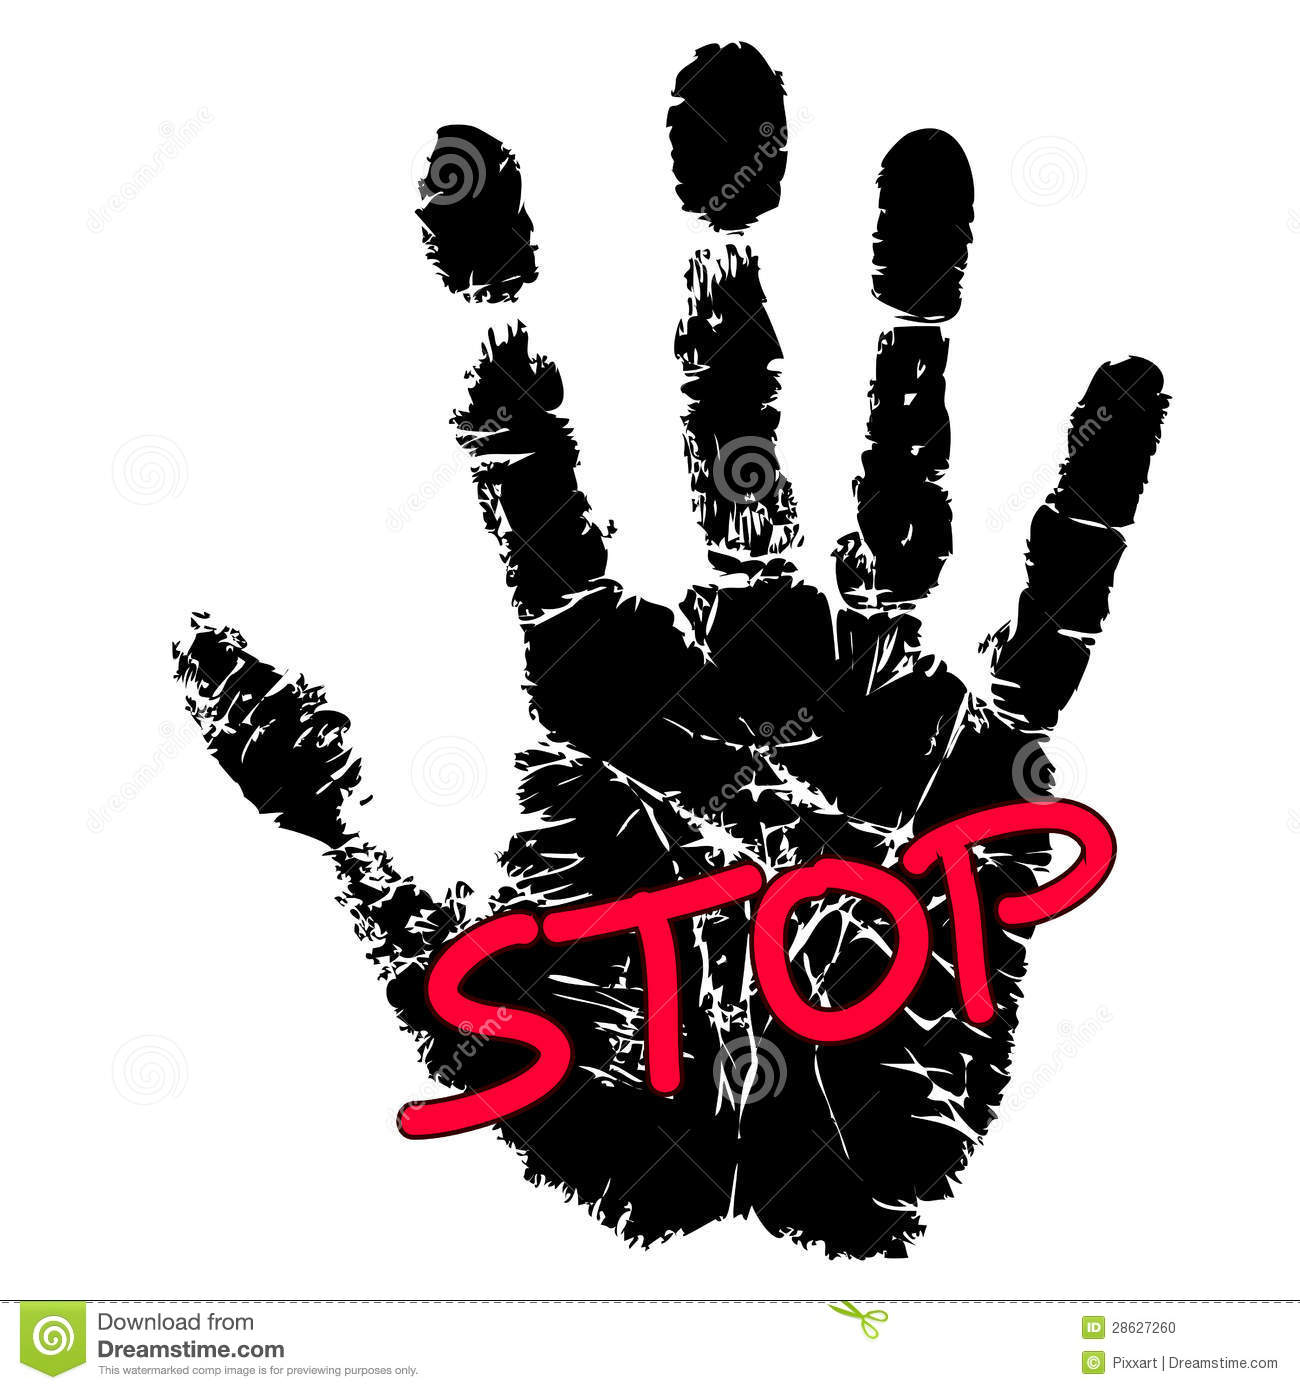 More similar stock images of ` Hand print with stop sign `